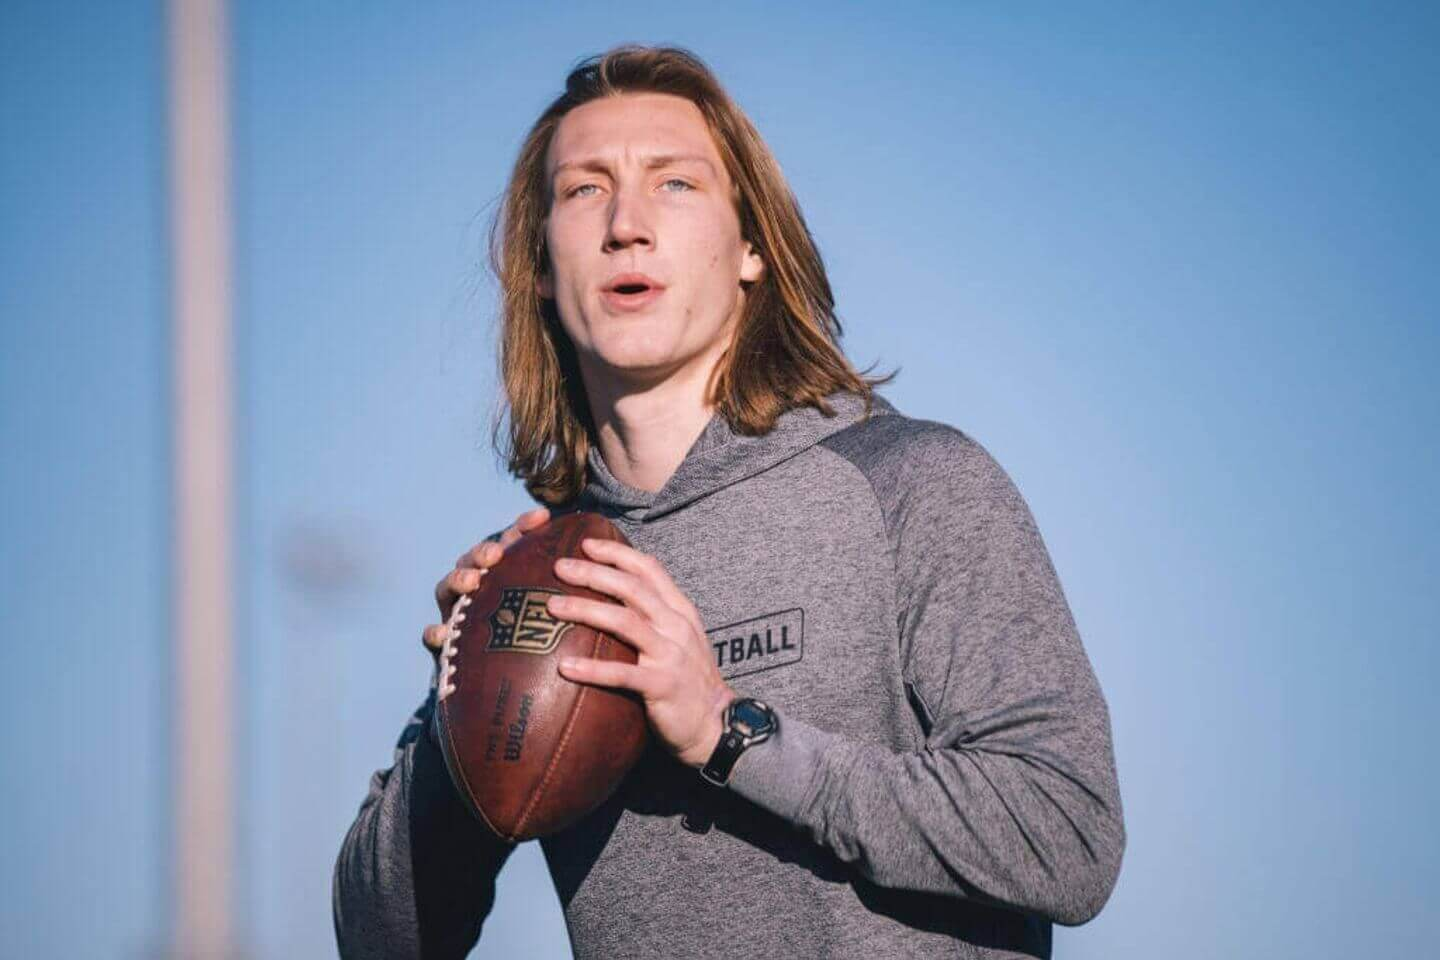 How many more wins better does Trevor Lawrence make the Jaguars?